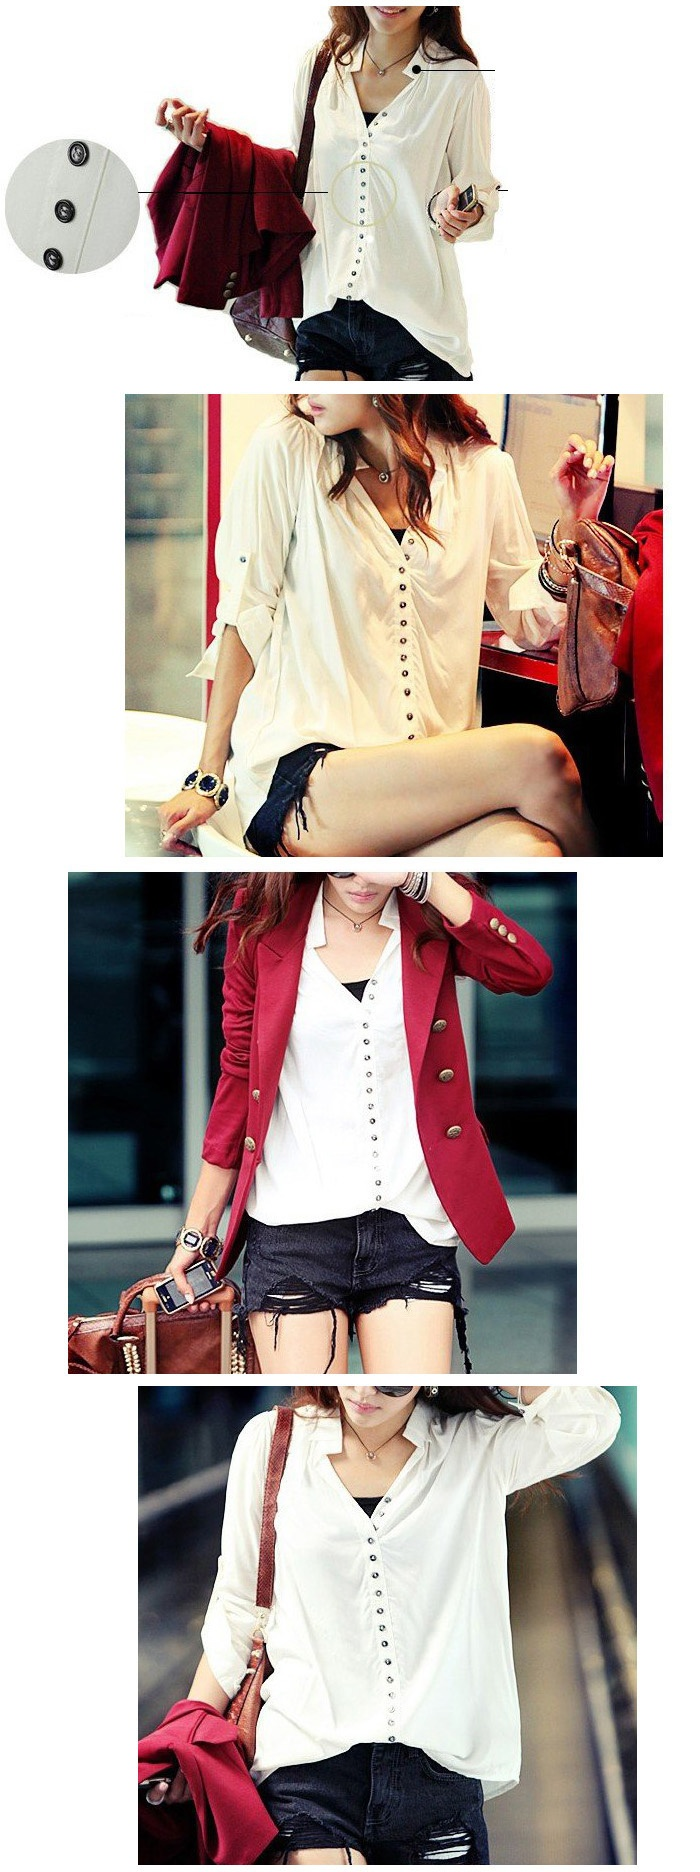 : Blouses, Long Sleeve Shirts, White Shirts, Casual, Cotton Shirts, Blazers, Buttons, Cute Outfit, Basic White